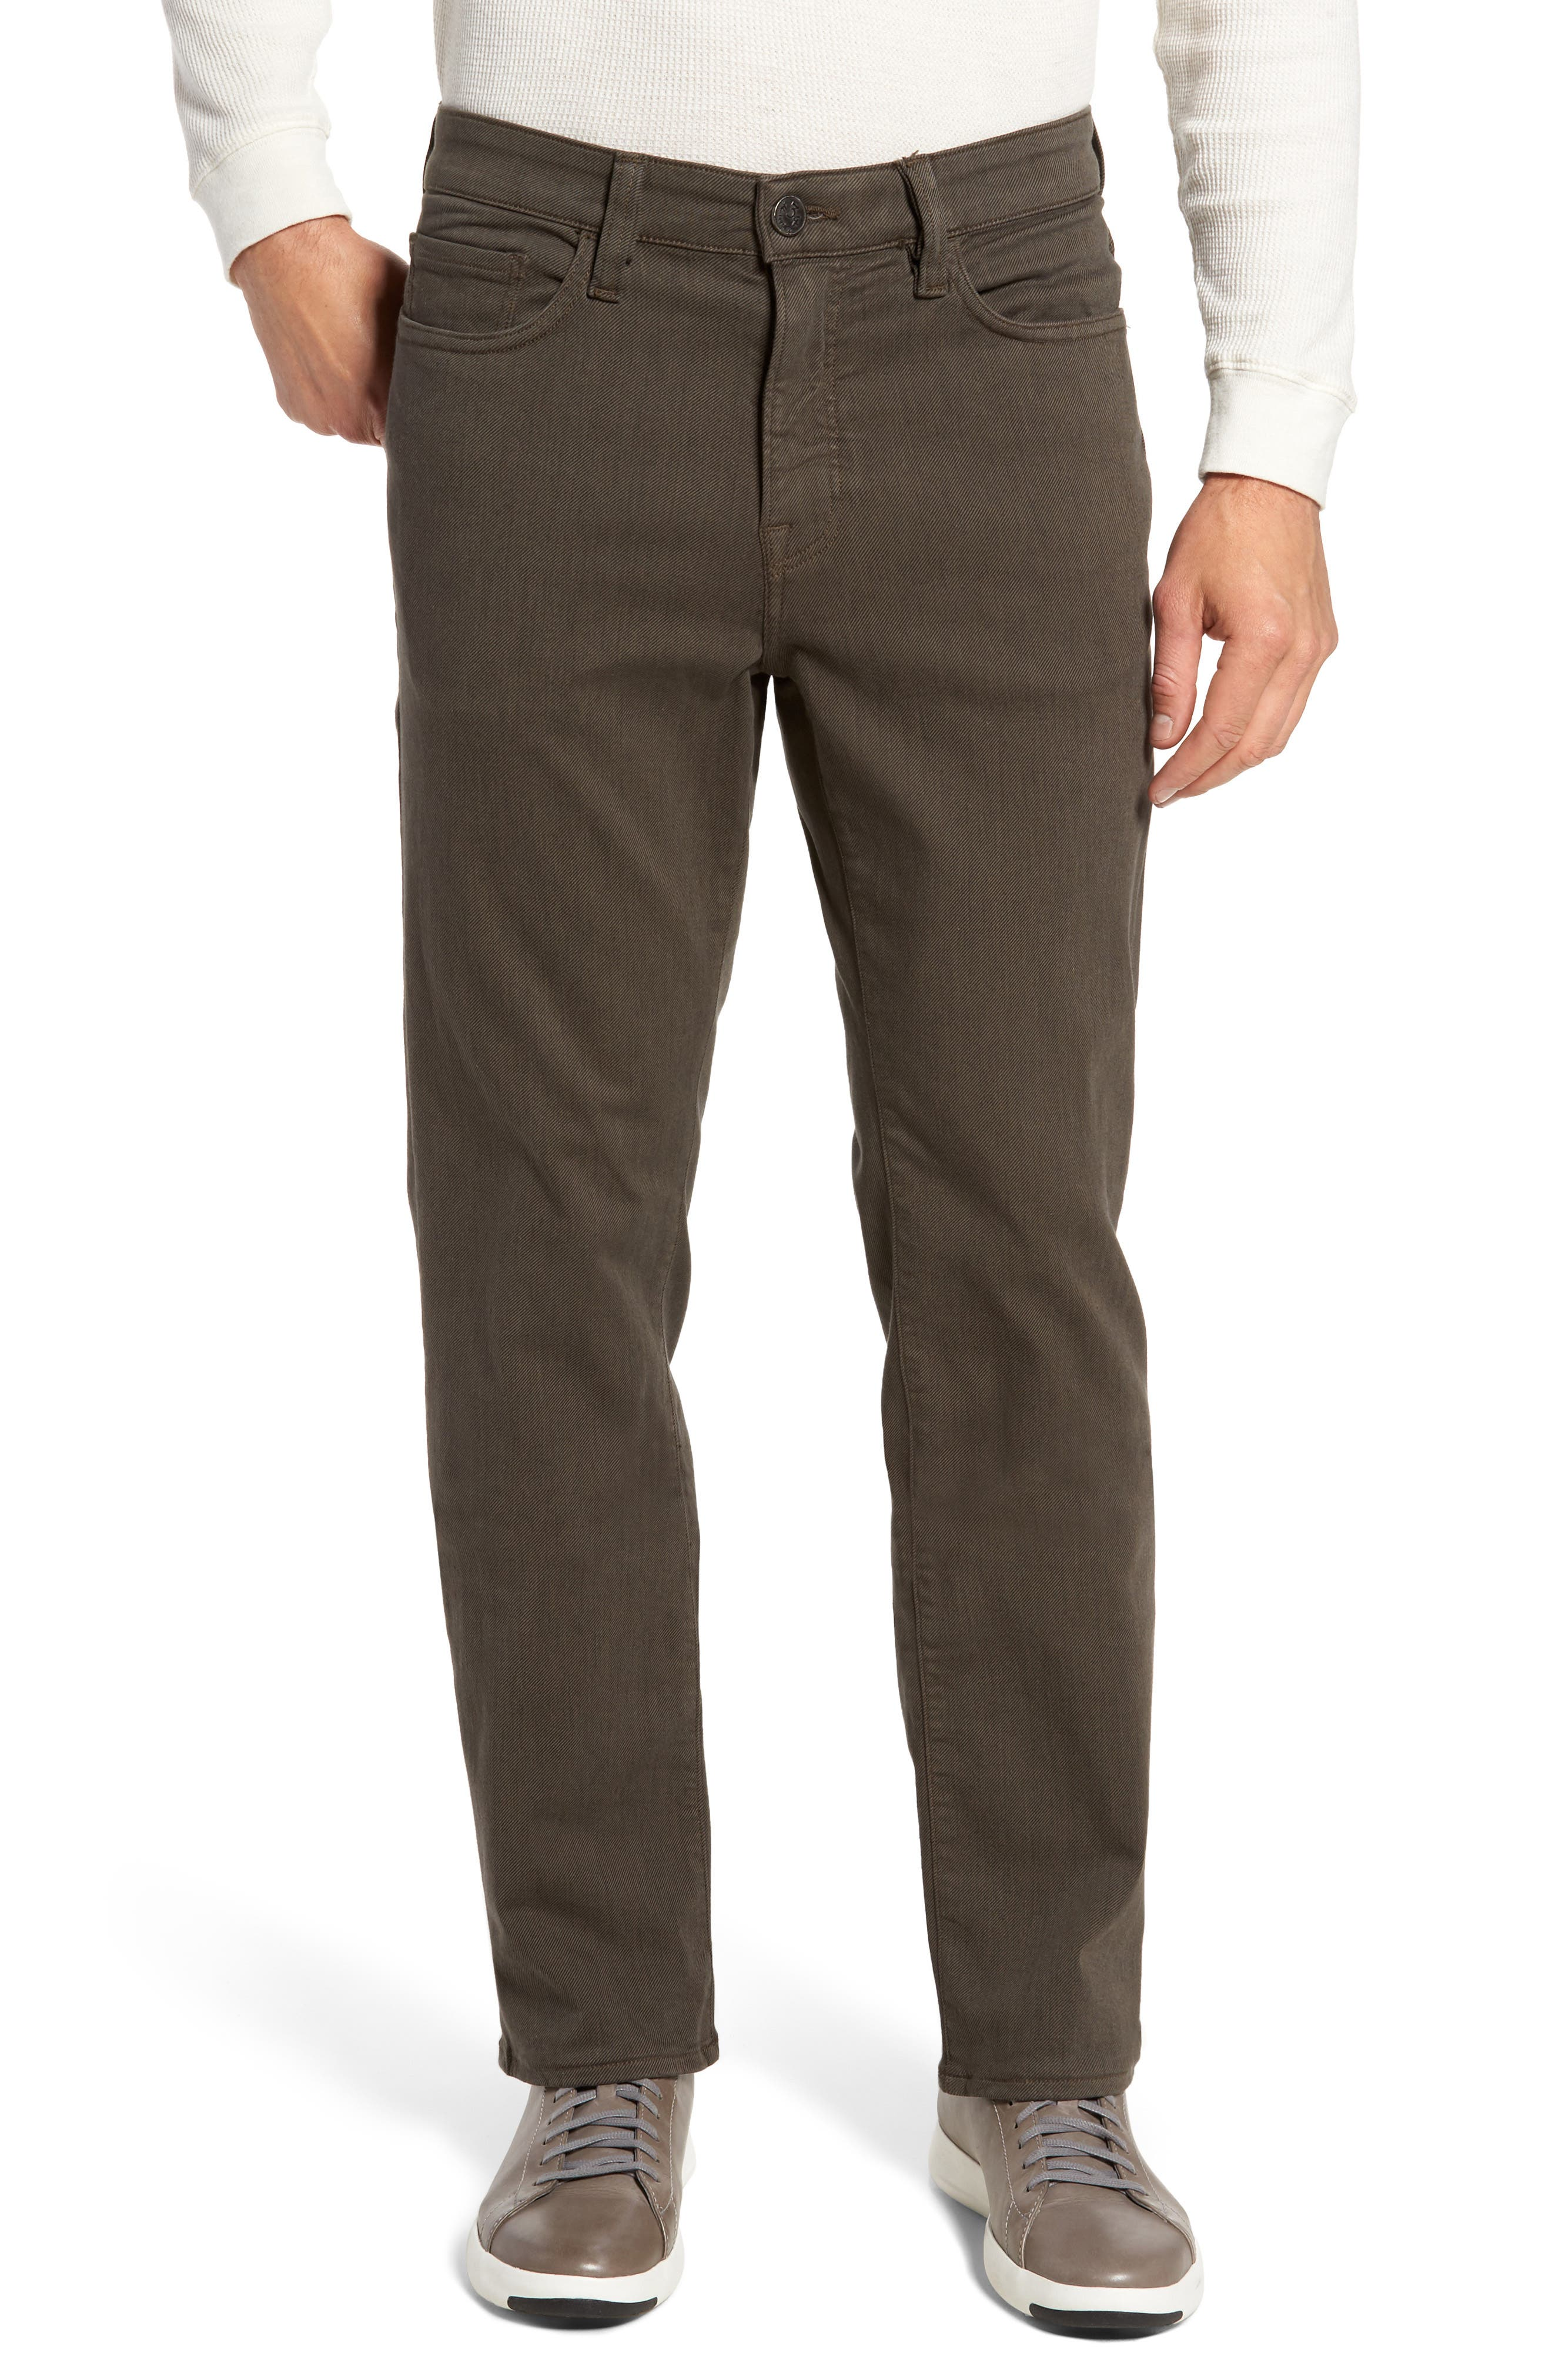 Main Image - 34 Heritage Charisma Relaxed Fit Jeans (Taupe Diagonal)